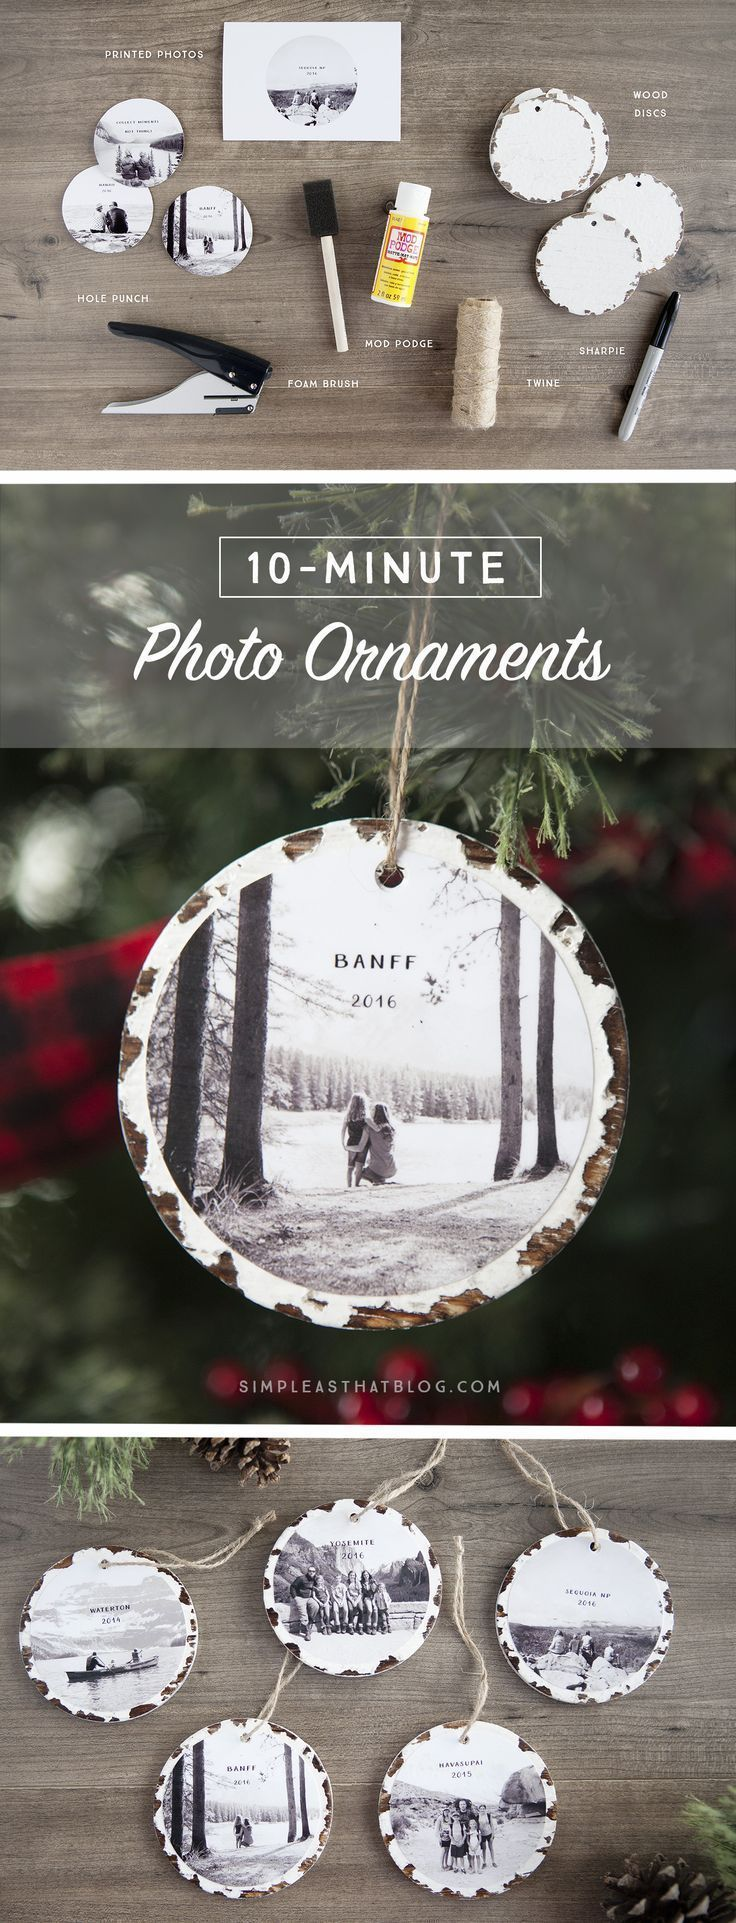 Ornaments for loved ones lost - 10 Minute Photo Keepsake Ornaments